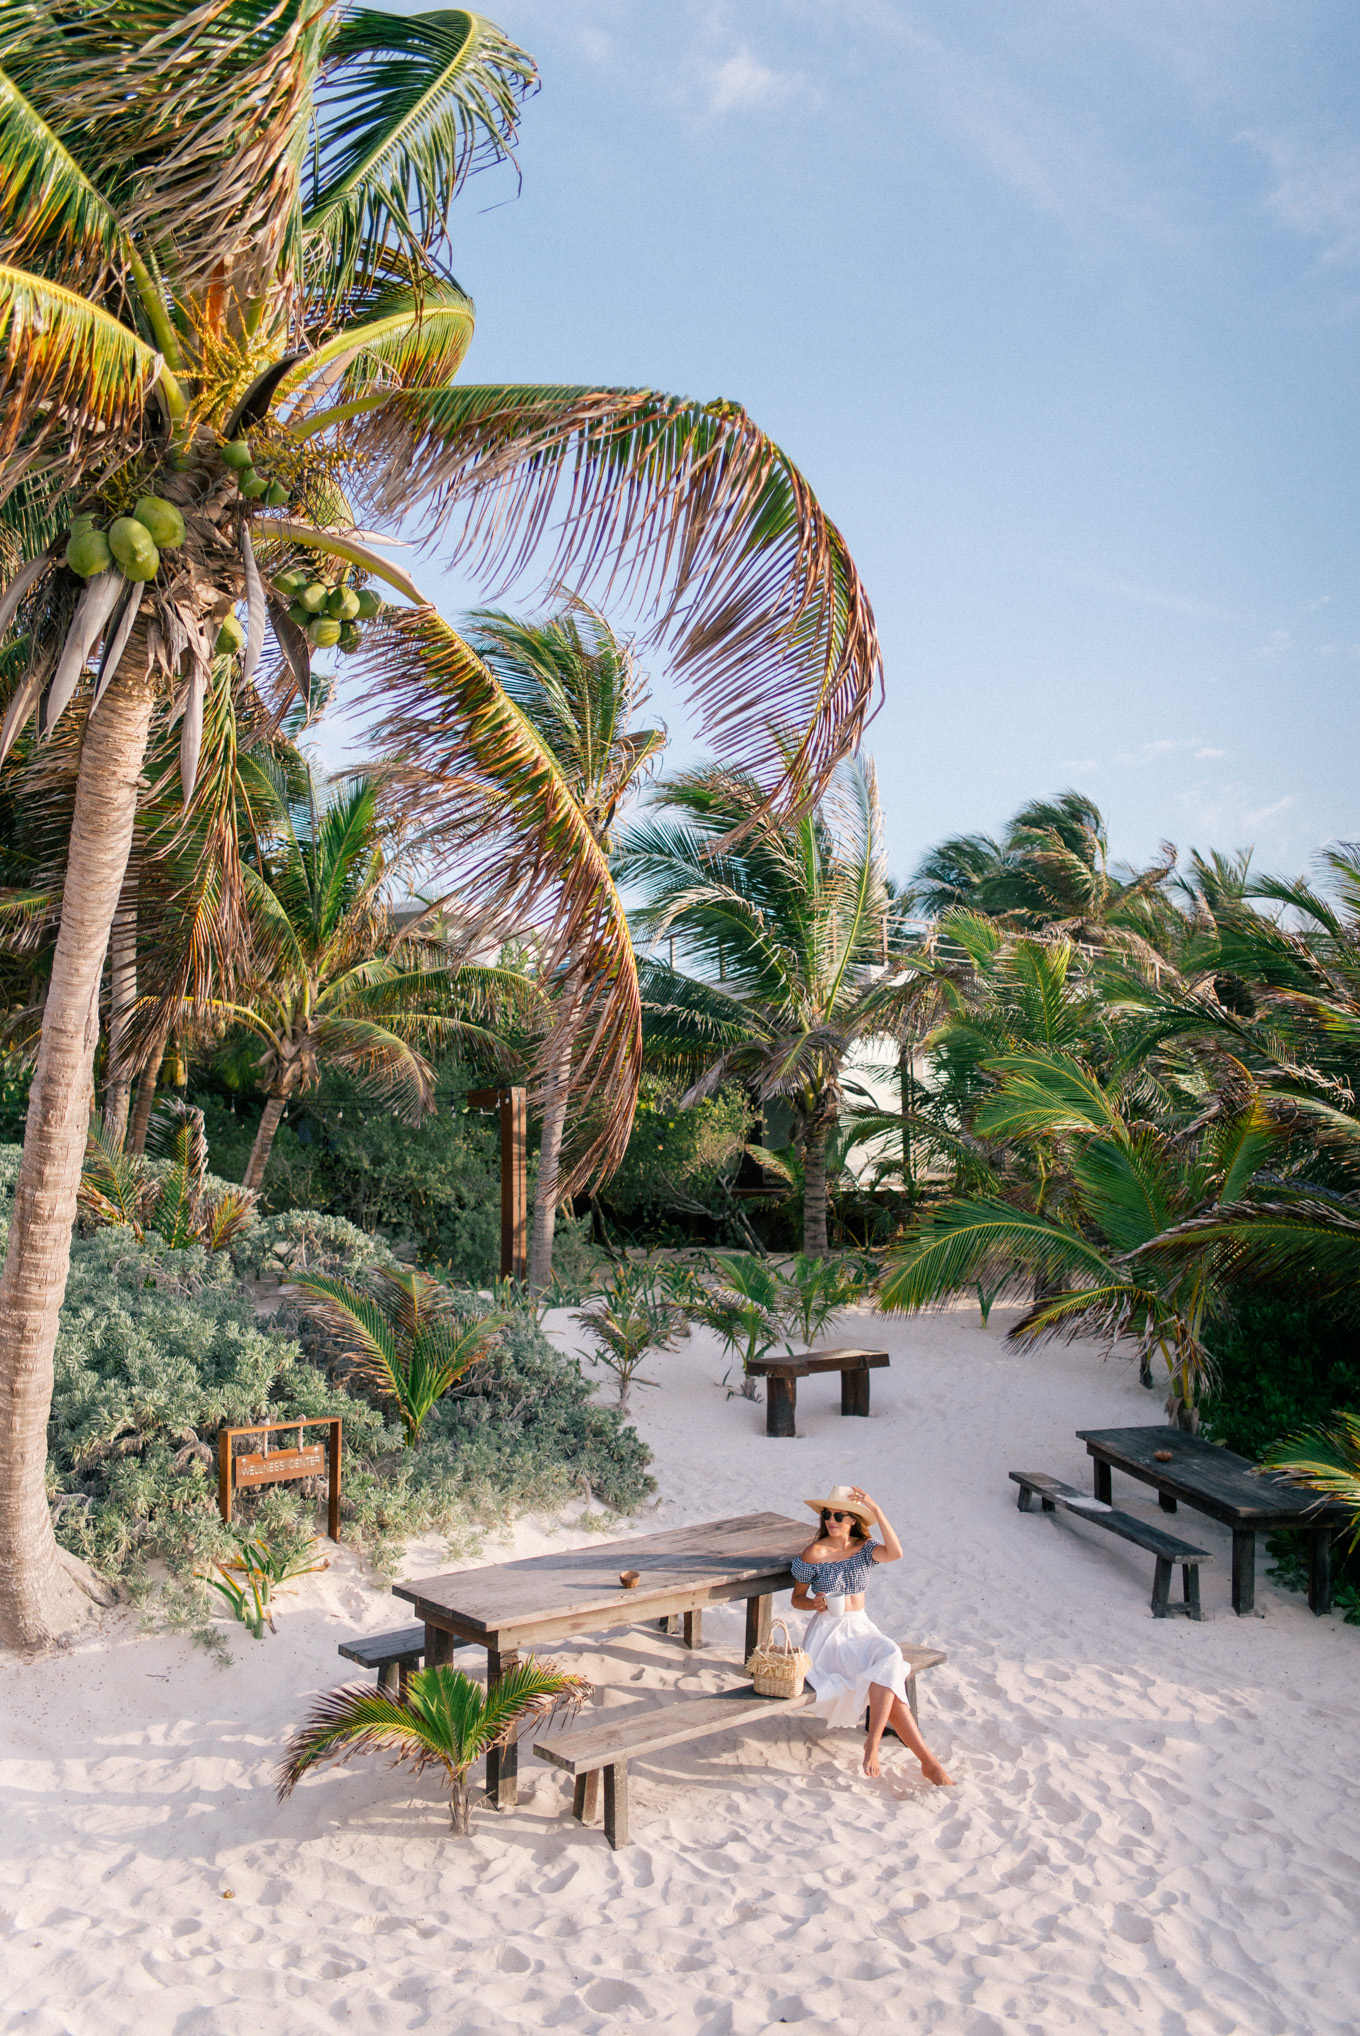 gmg-tulum-guide-1009892